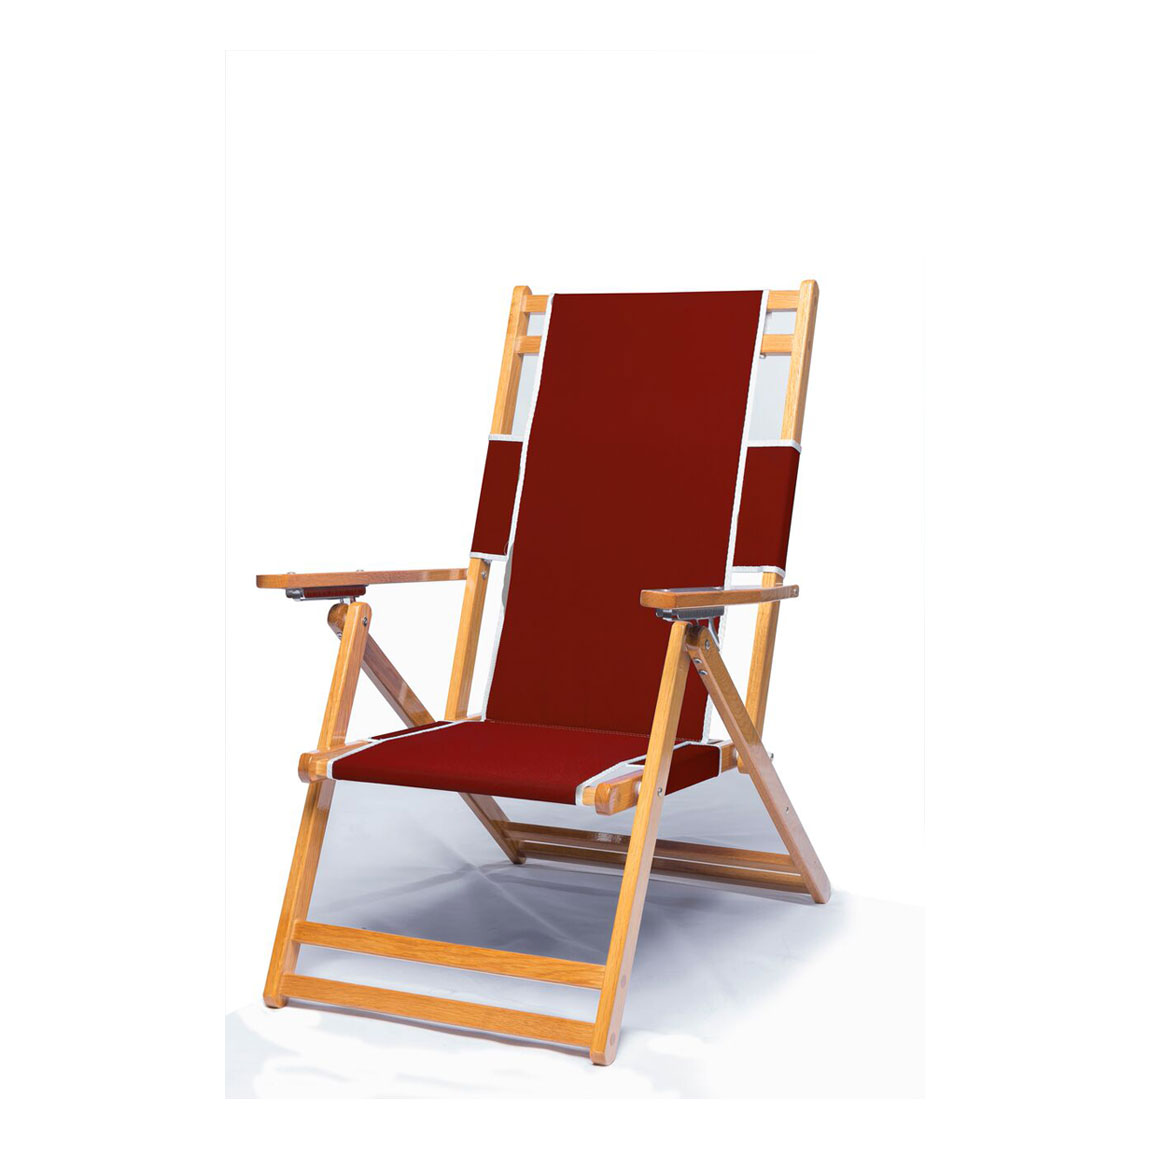 Heavy duty commercial grade oak wood beach chair chaise for Chaise furniture commercial